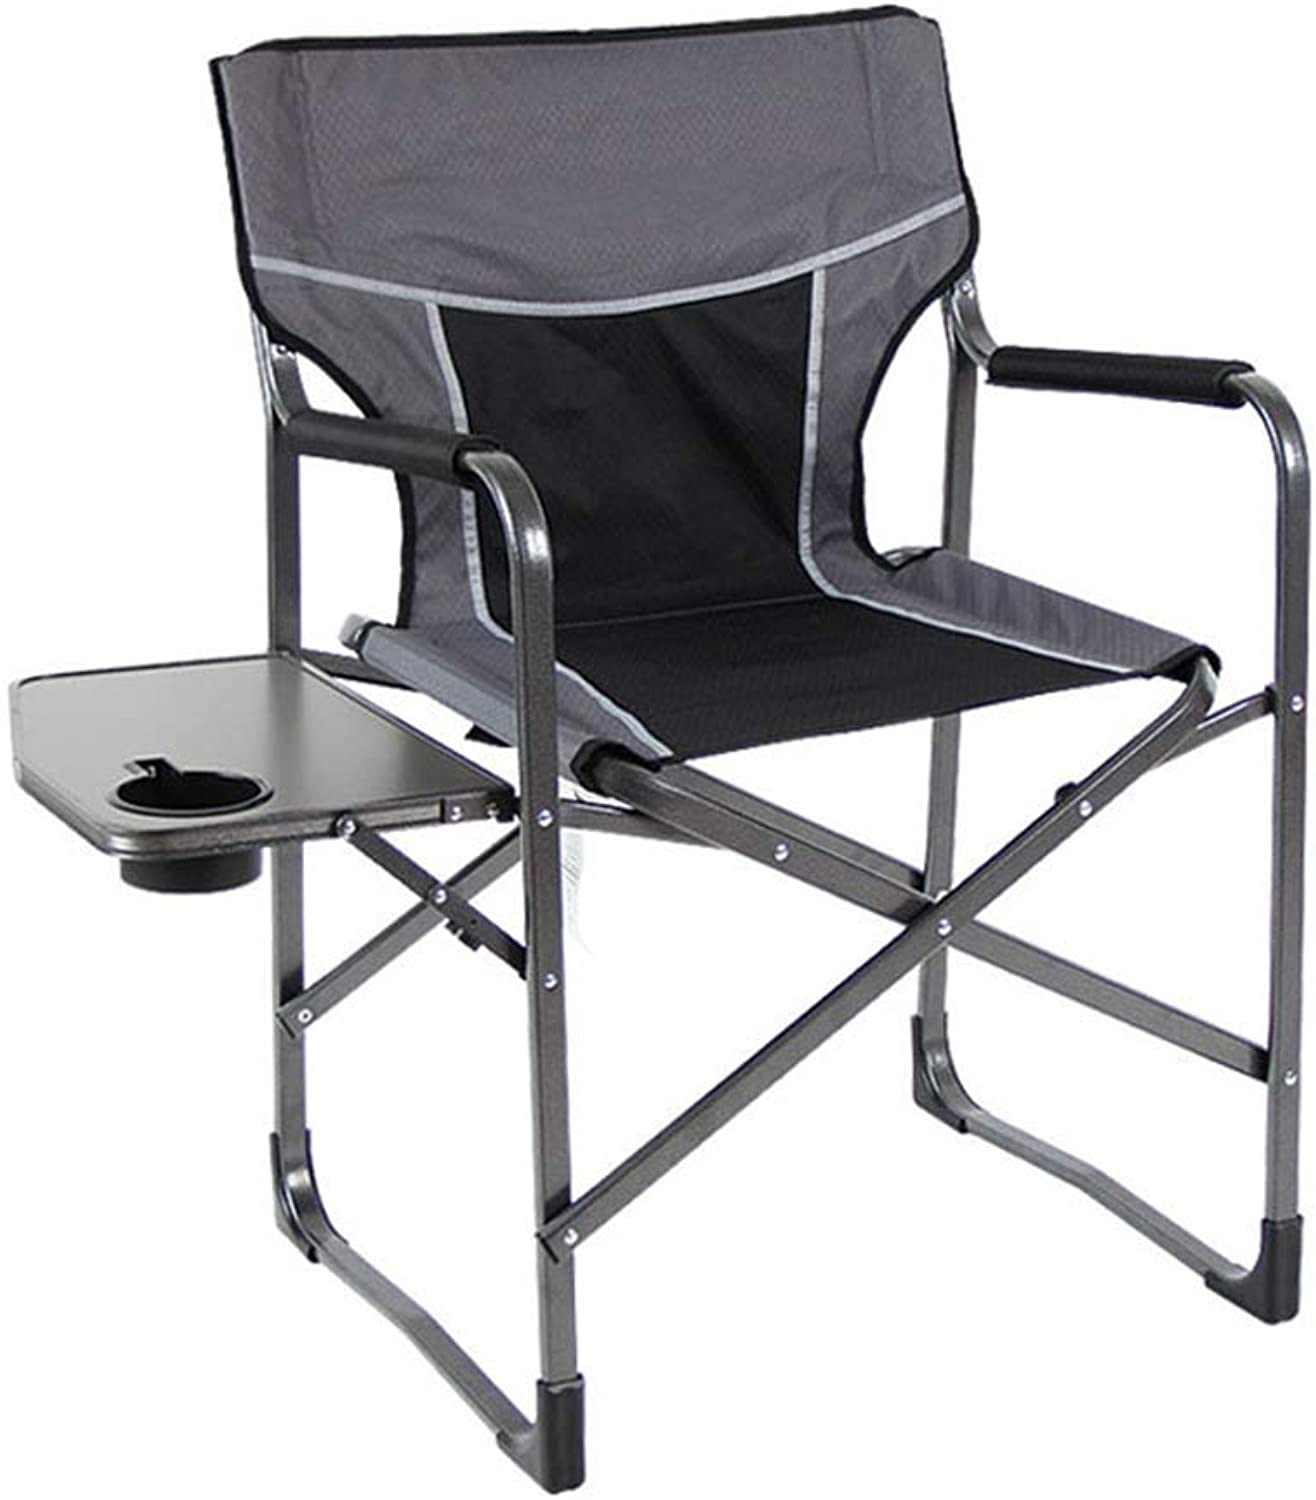 DaQingYuntur Outdoor Lounge Chair, Aluminum Fishing Chair, Outdoor Chair with Table, high Back Director Cup Holder,Outdoor Leisure Luxury Padded Folding Camping Chair (color   Black)